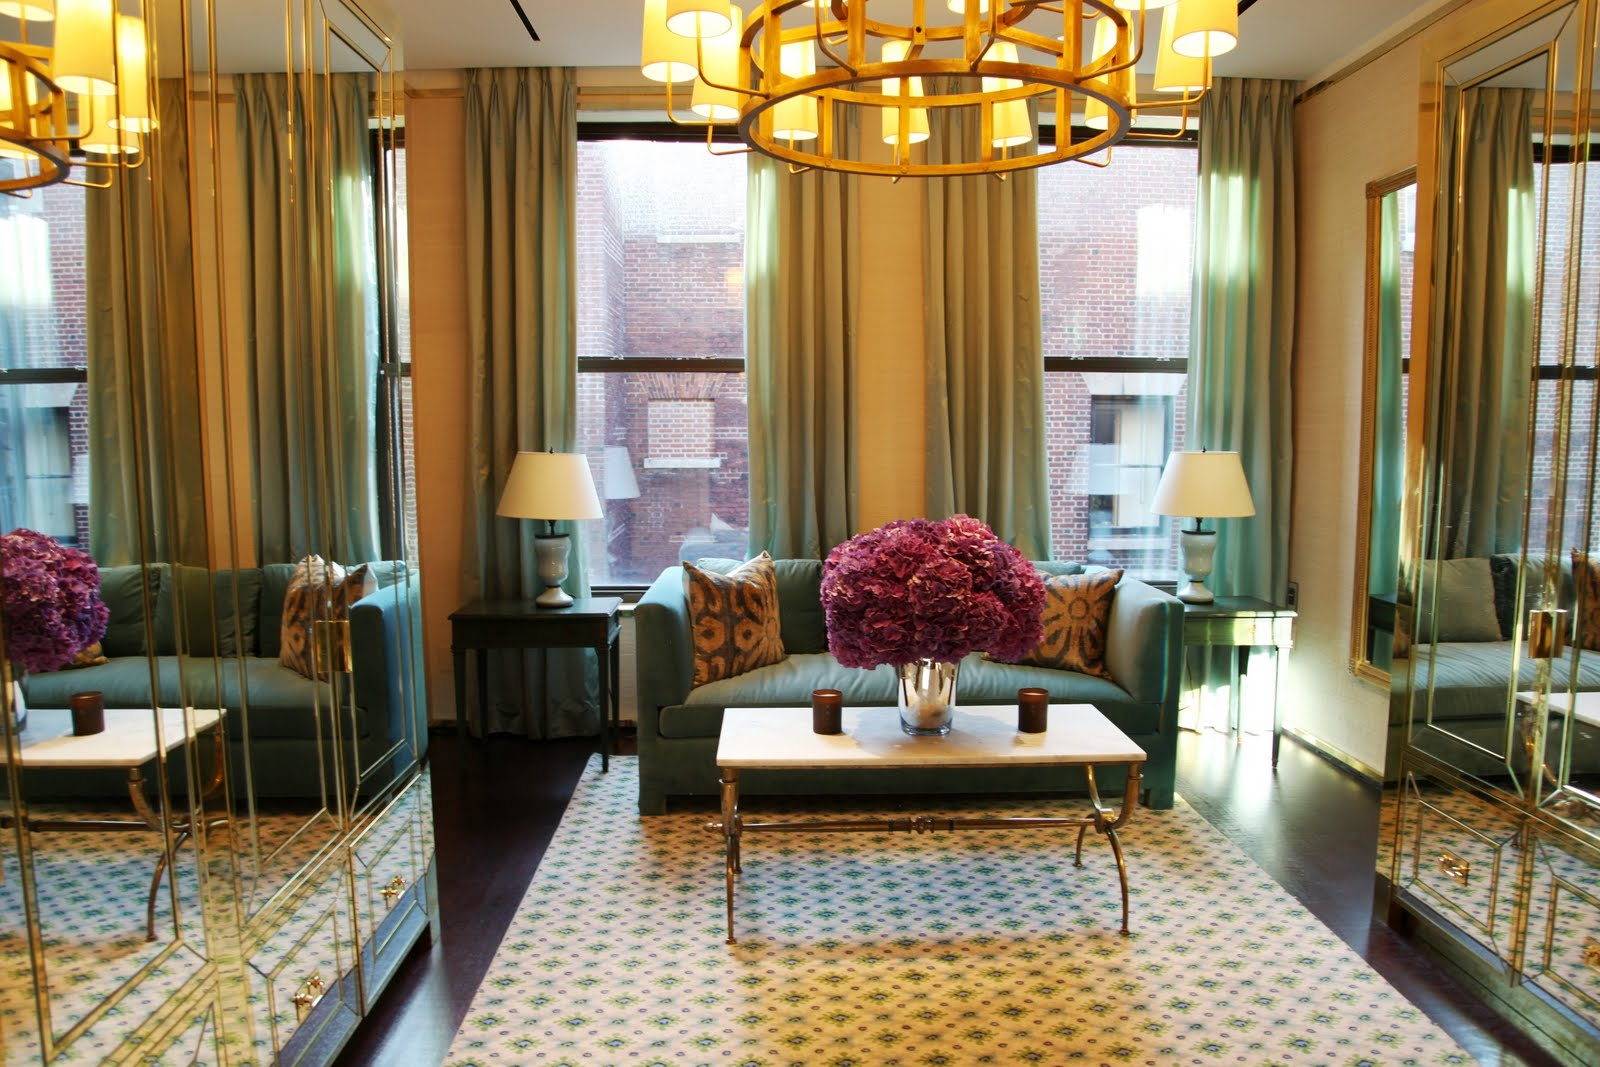 Tory burch madison avenue part 1 ellegant home design for Home decor stores nyc